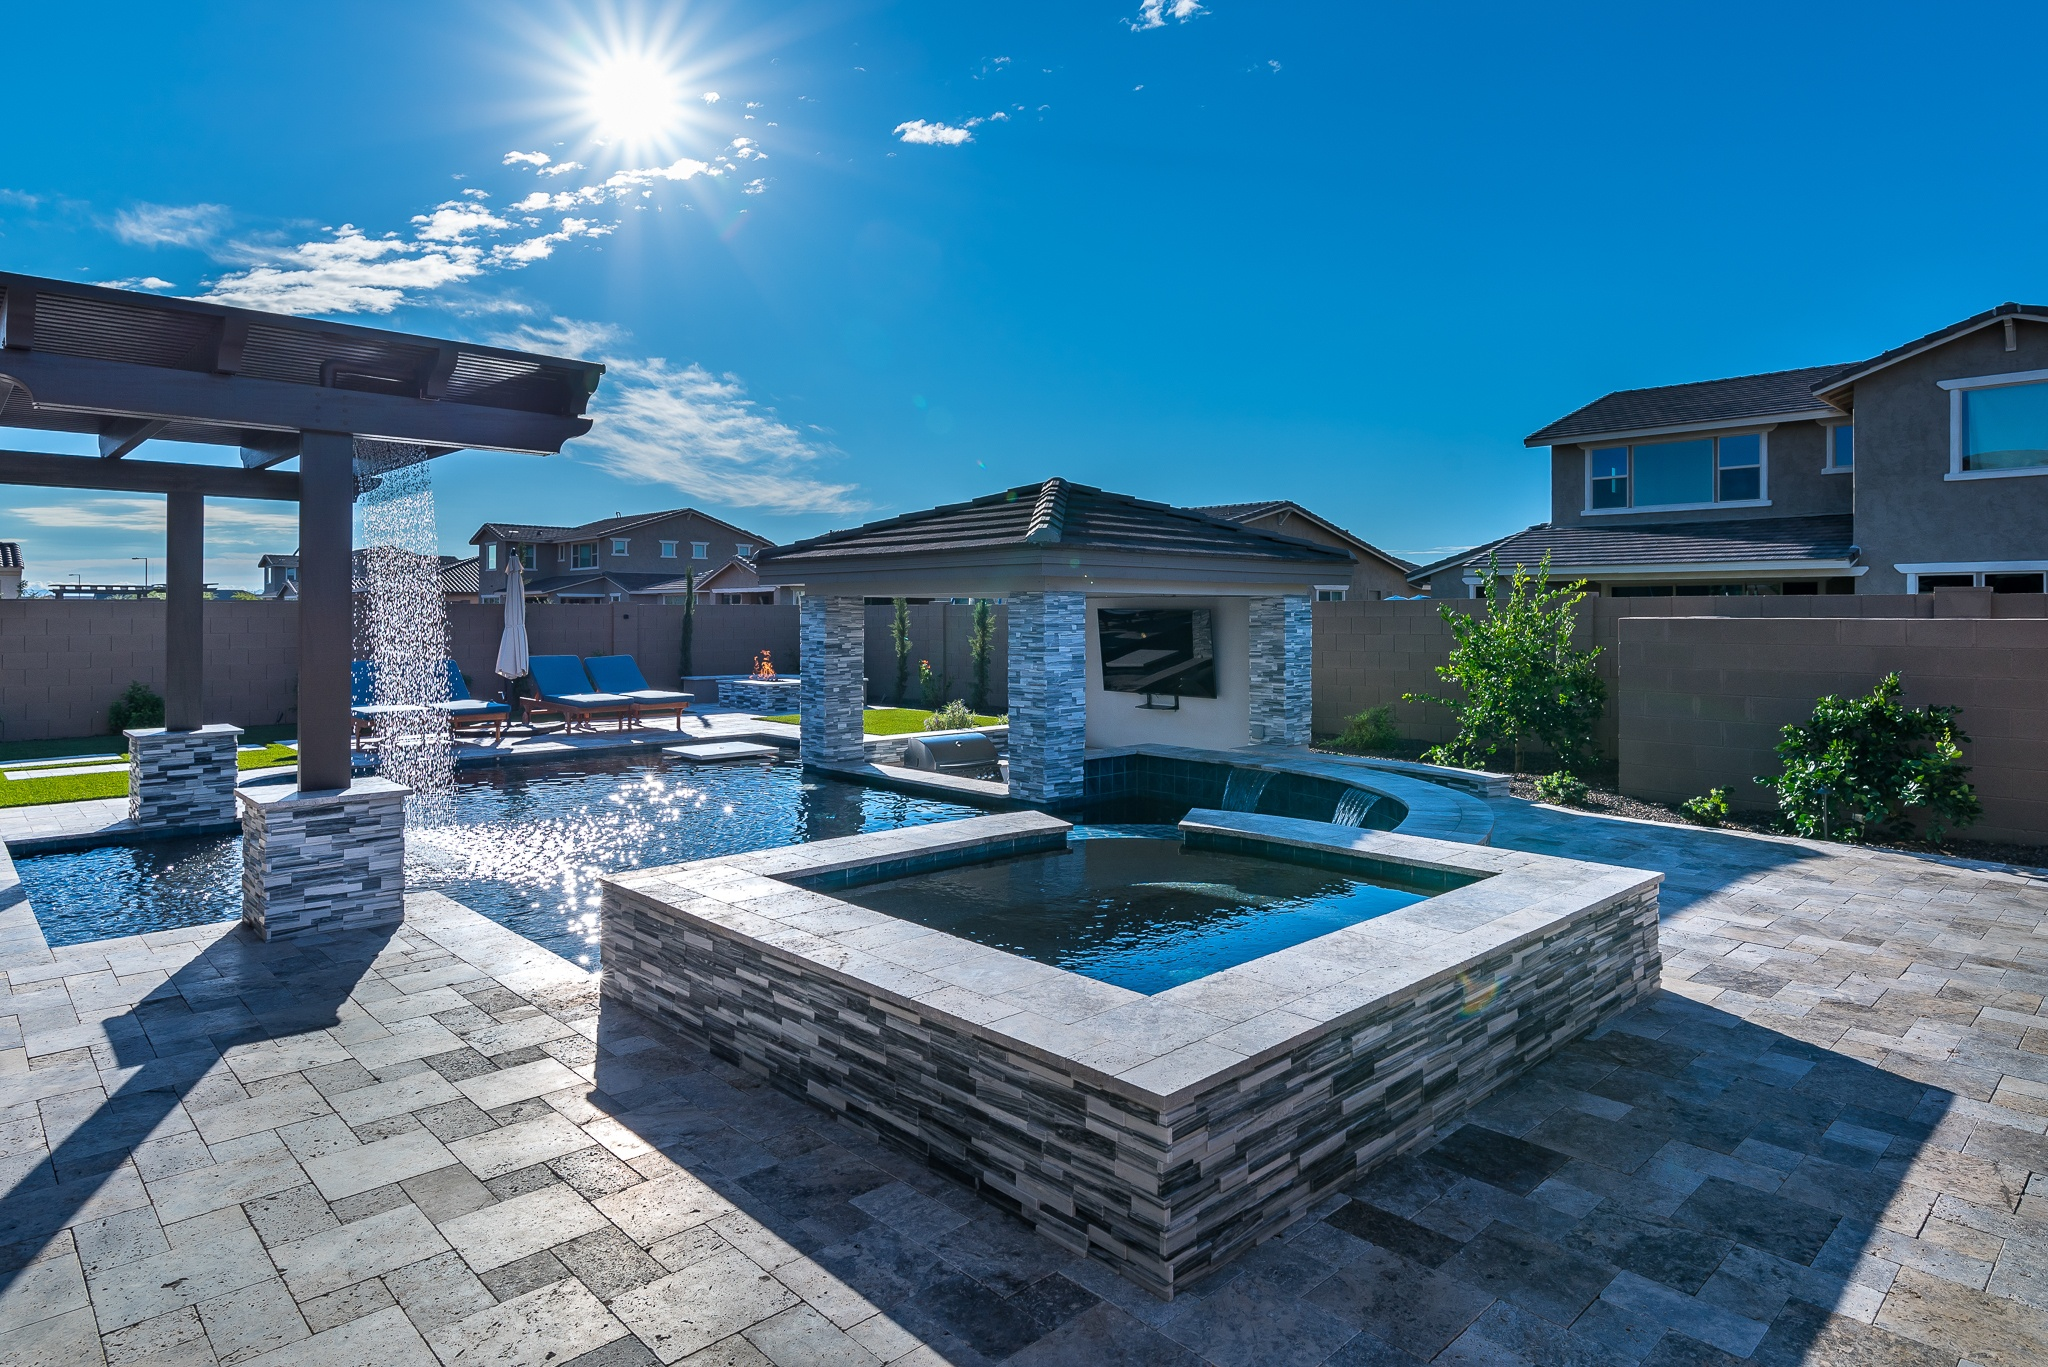 swimming pool design modern travertine pergola sunken kitchen baja deck